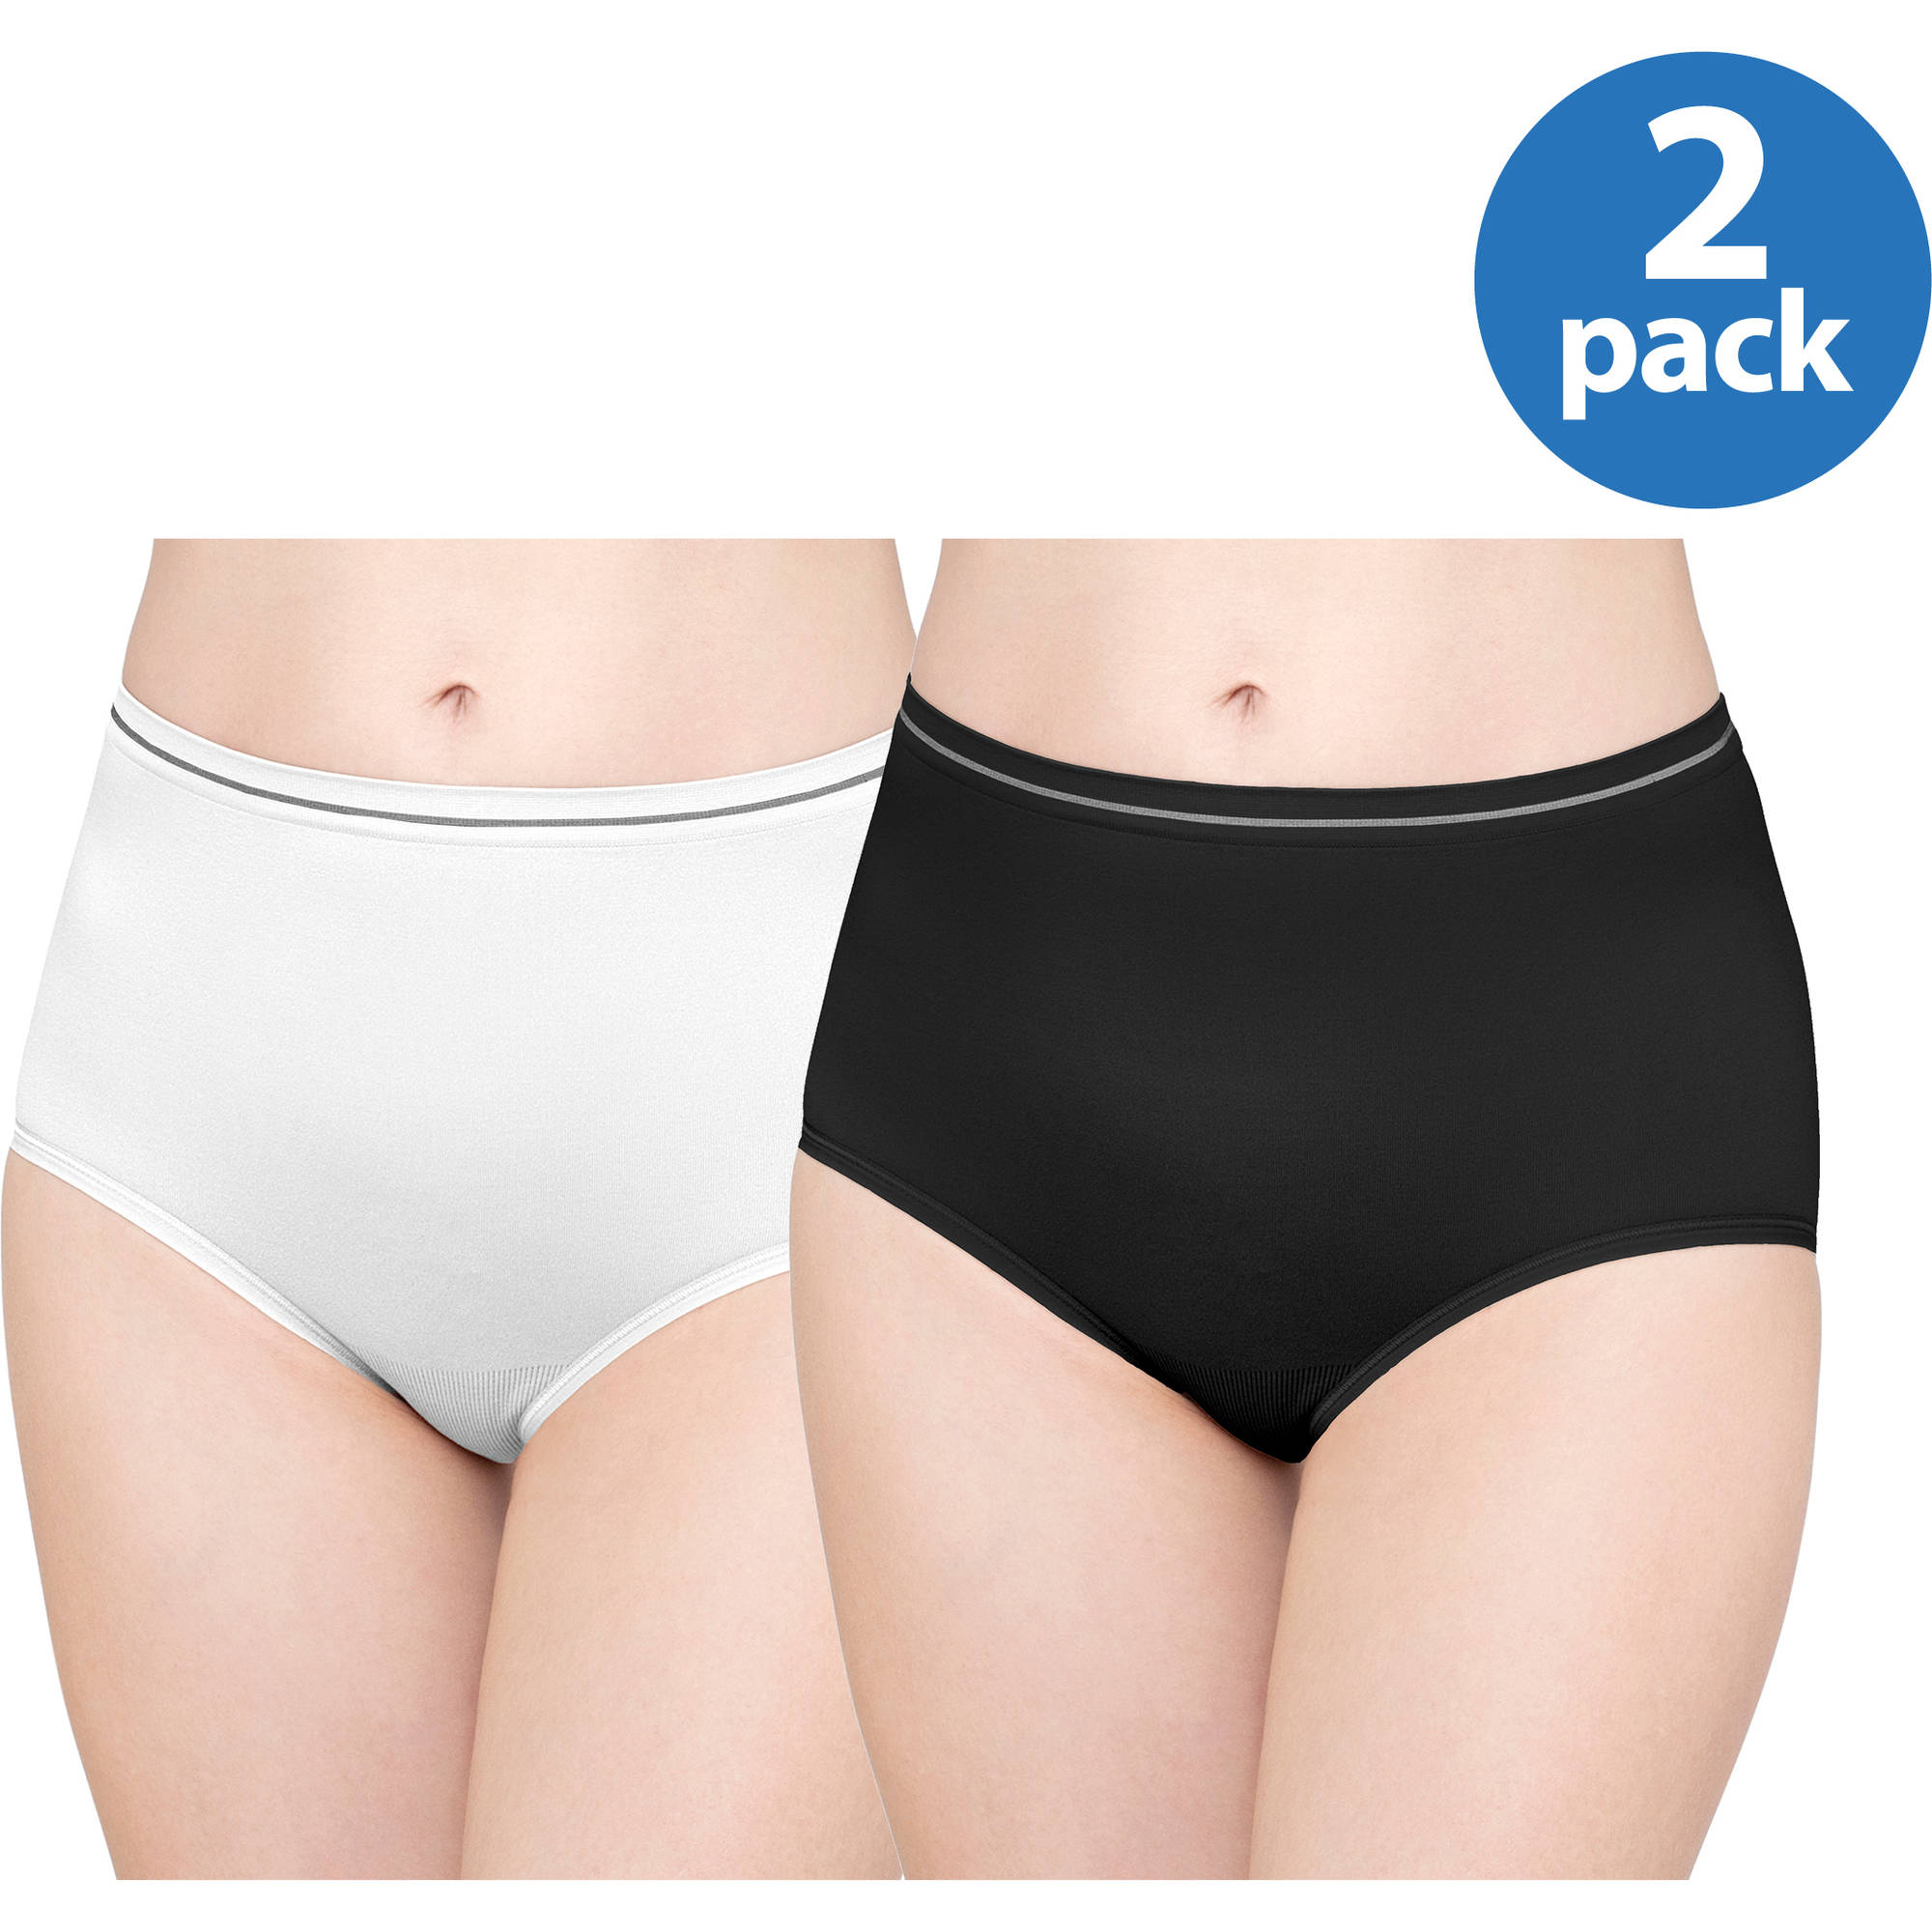 Panty Seamless Brief, 2pk